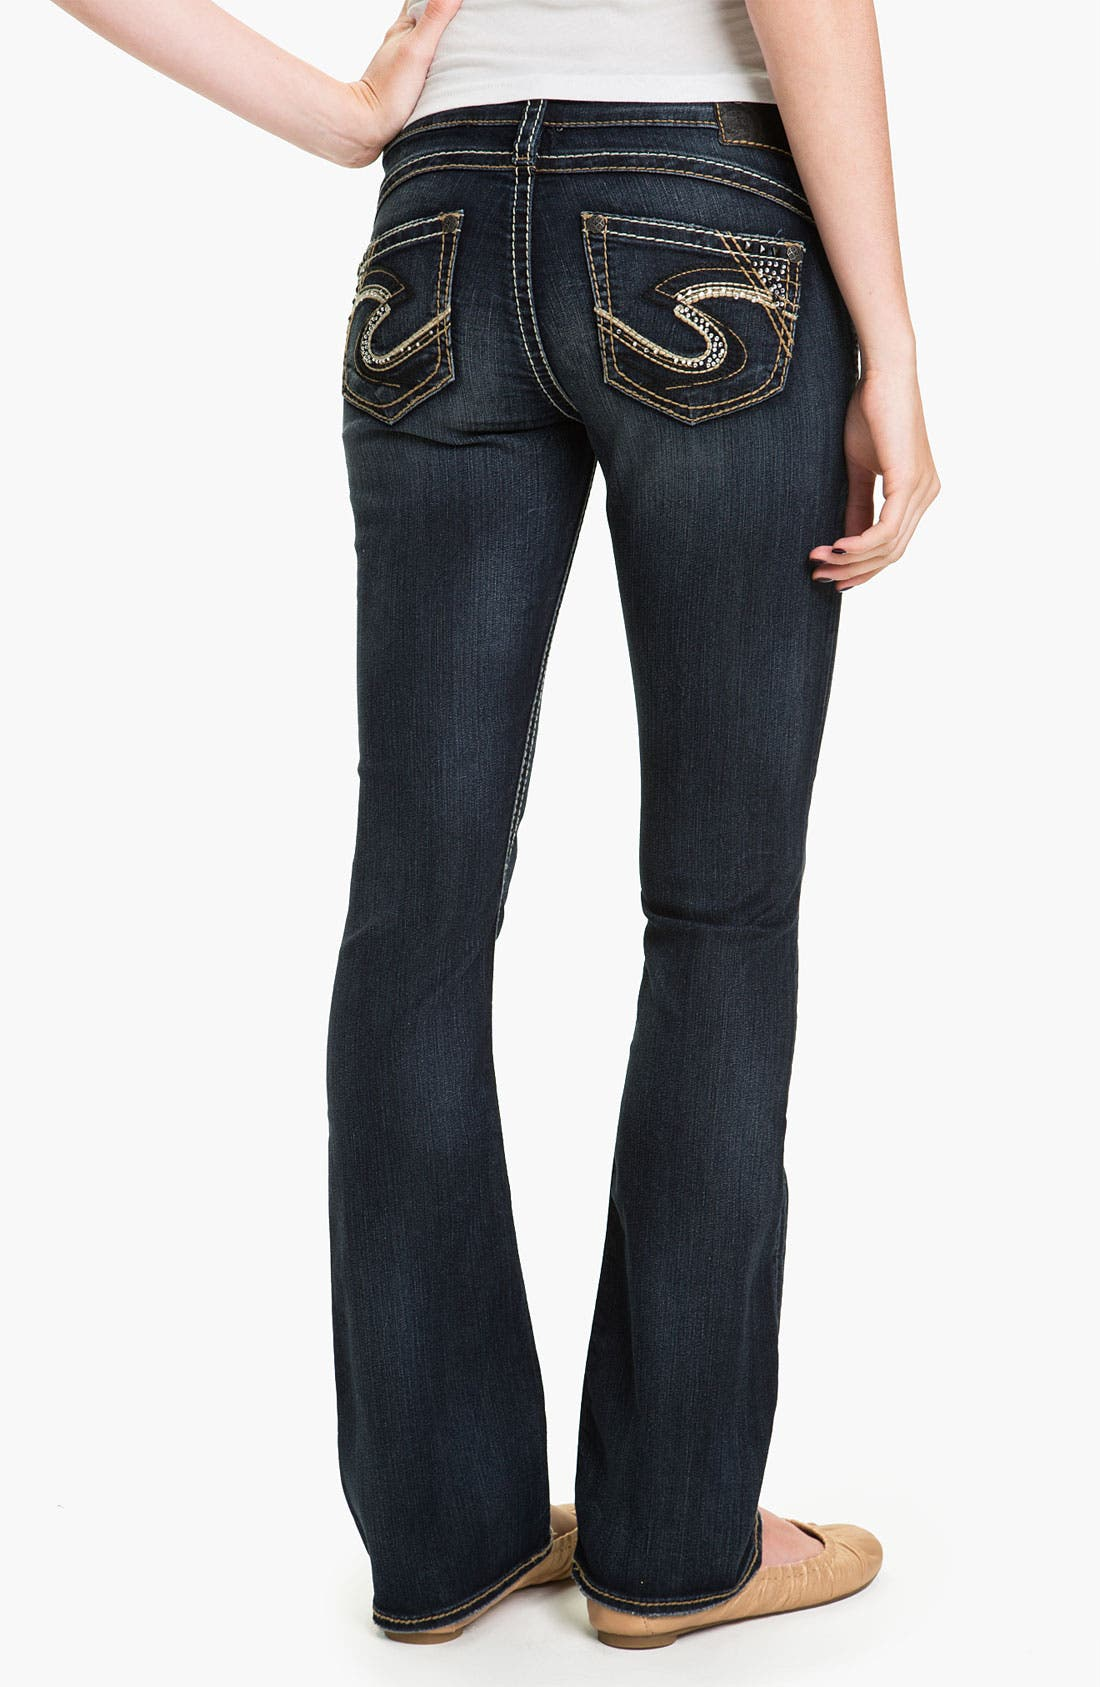 Alternate Image 1 Selected - Silver Jeans Co. 'Tuesday' Bootcut Jeans (Juniors)